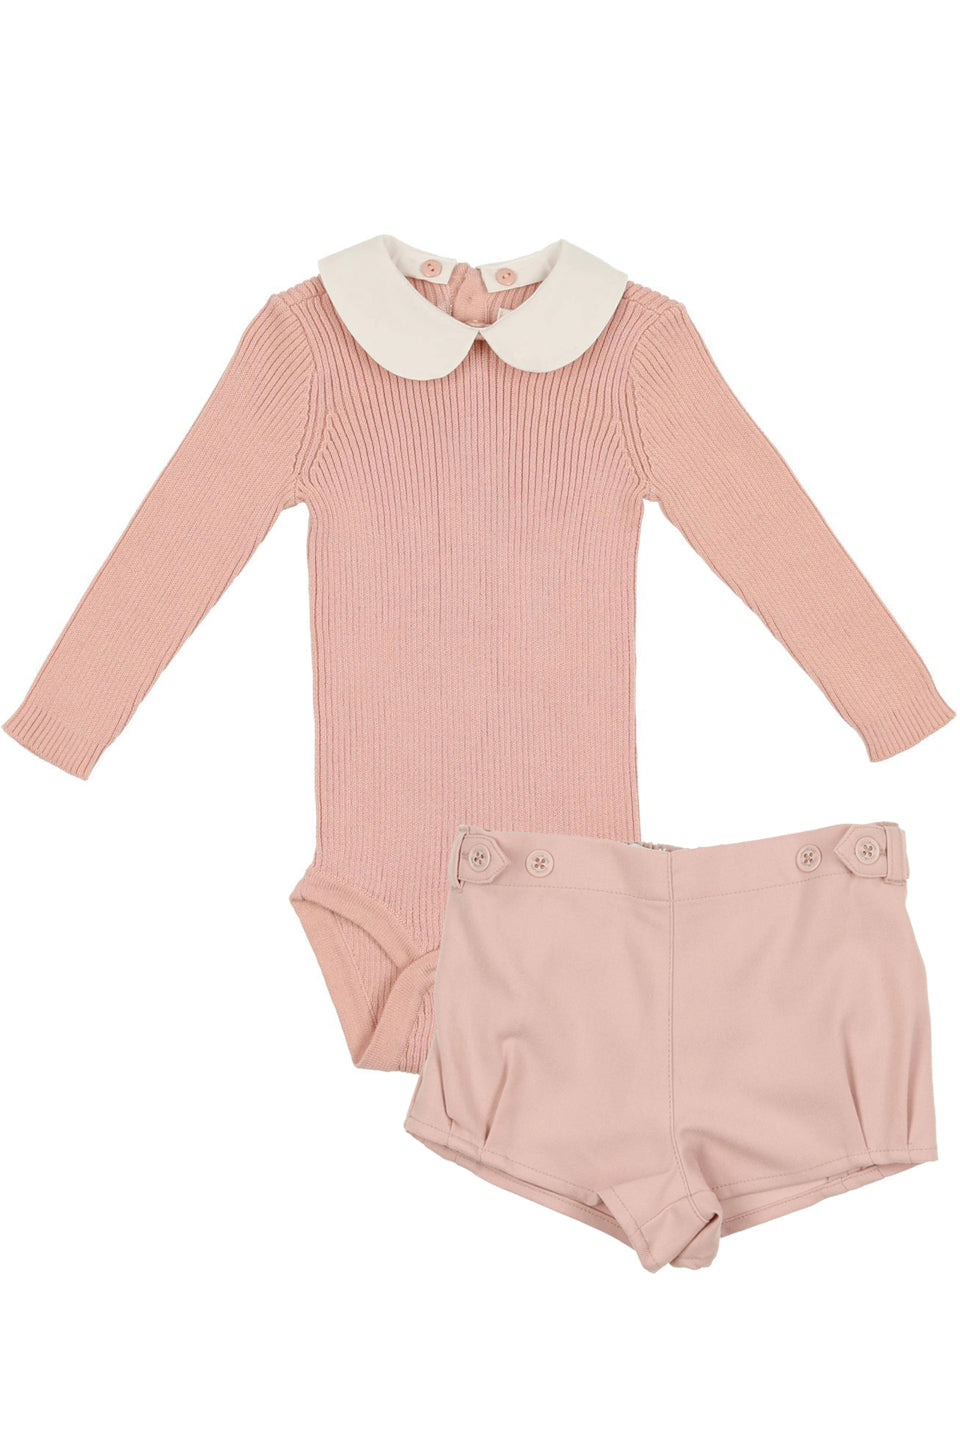 Cocoblanc sweater & wool shorts